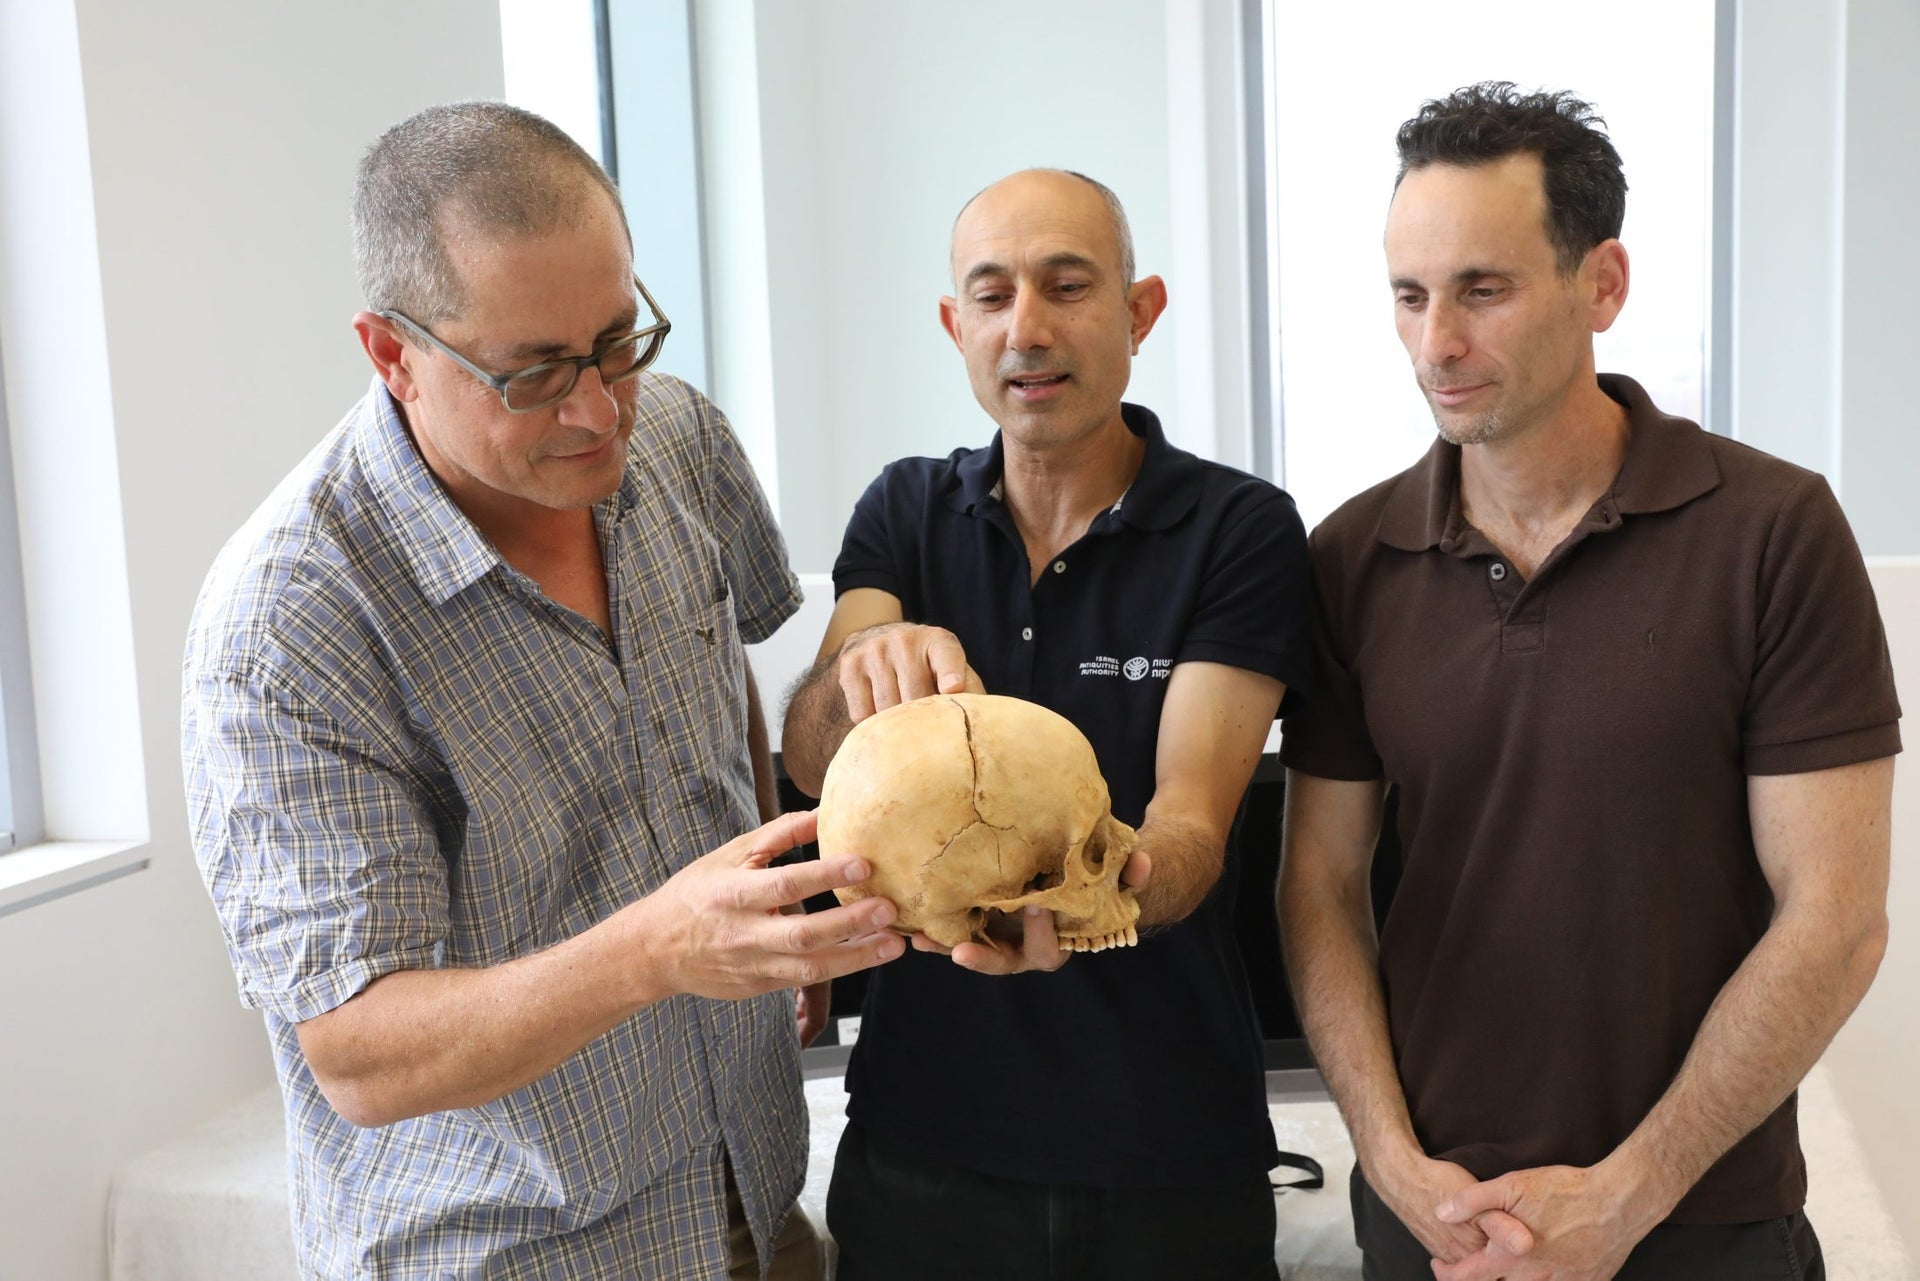 From left: Prof. Boaz Zissu, Dr. Yossi Nagar and Dr. Haim Cohen with the 1,000 year old skull found near Jerusalem that they believe is the earliest known solid evidence of blood vengeance.